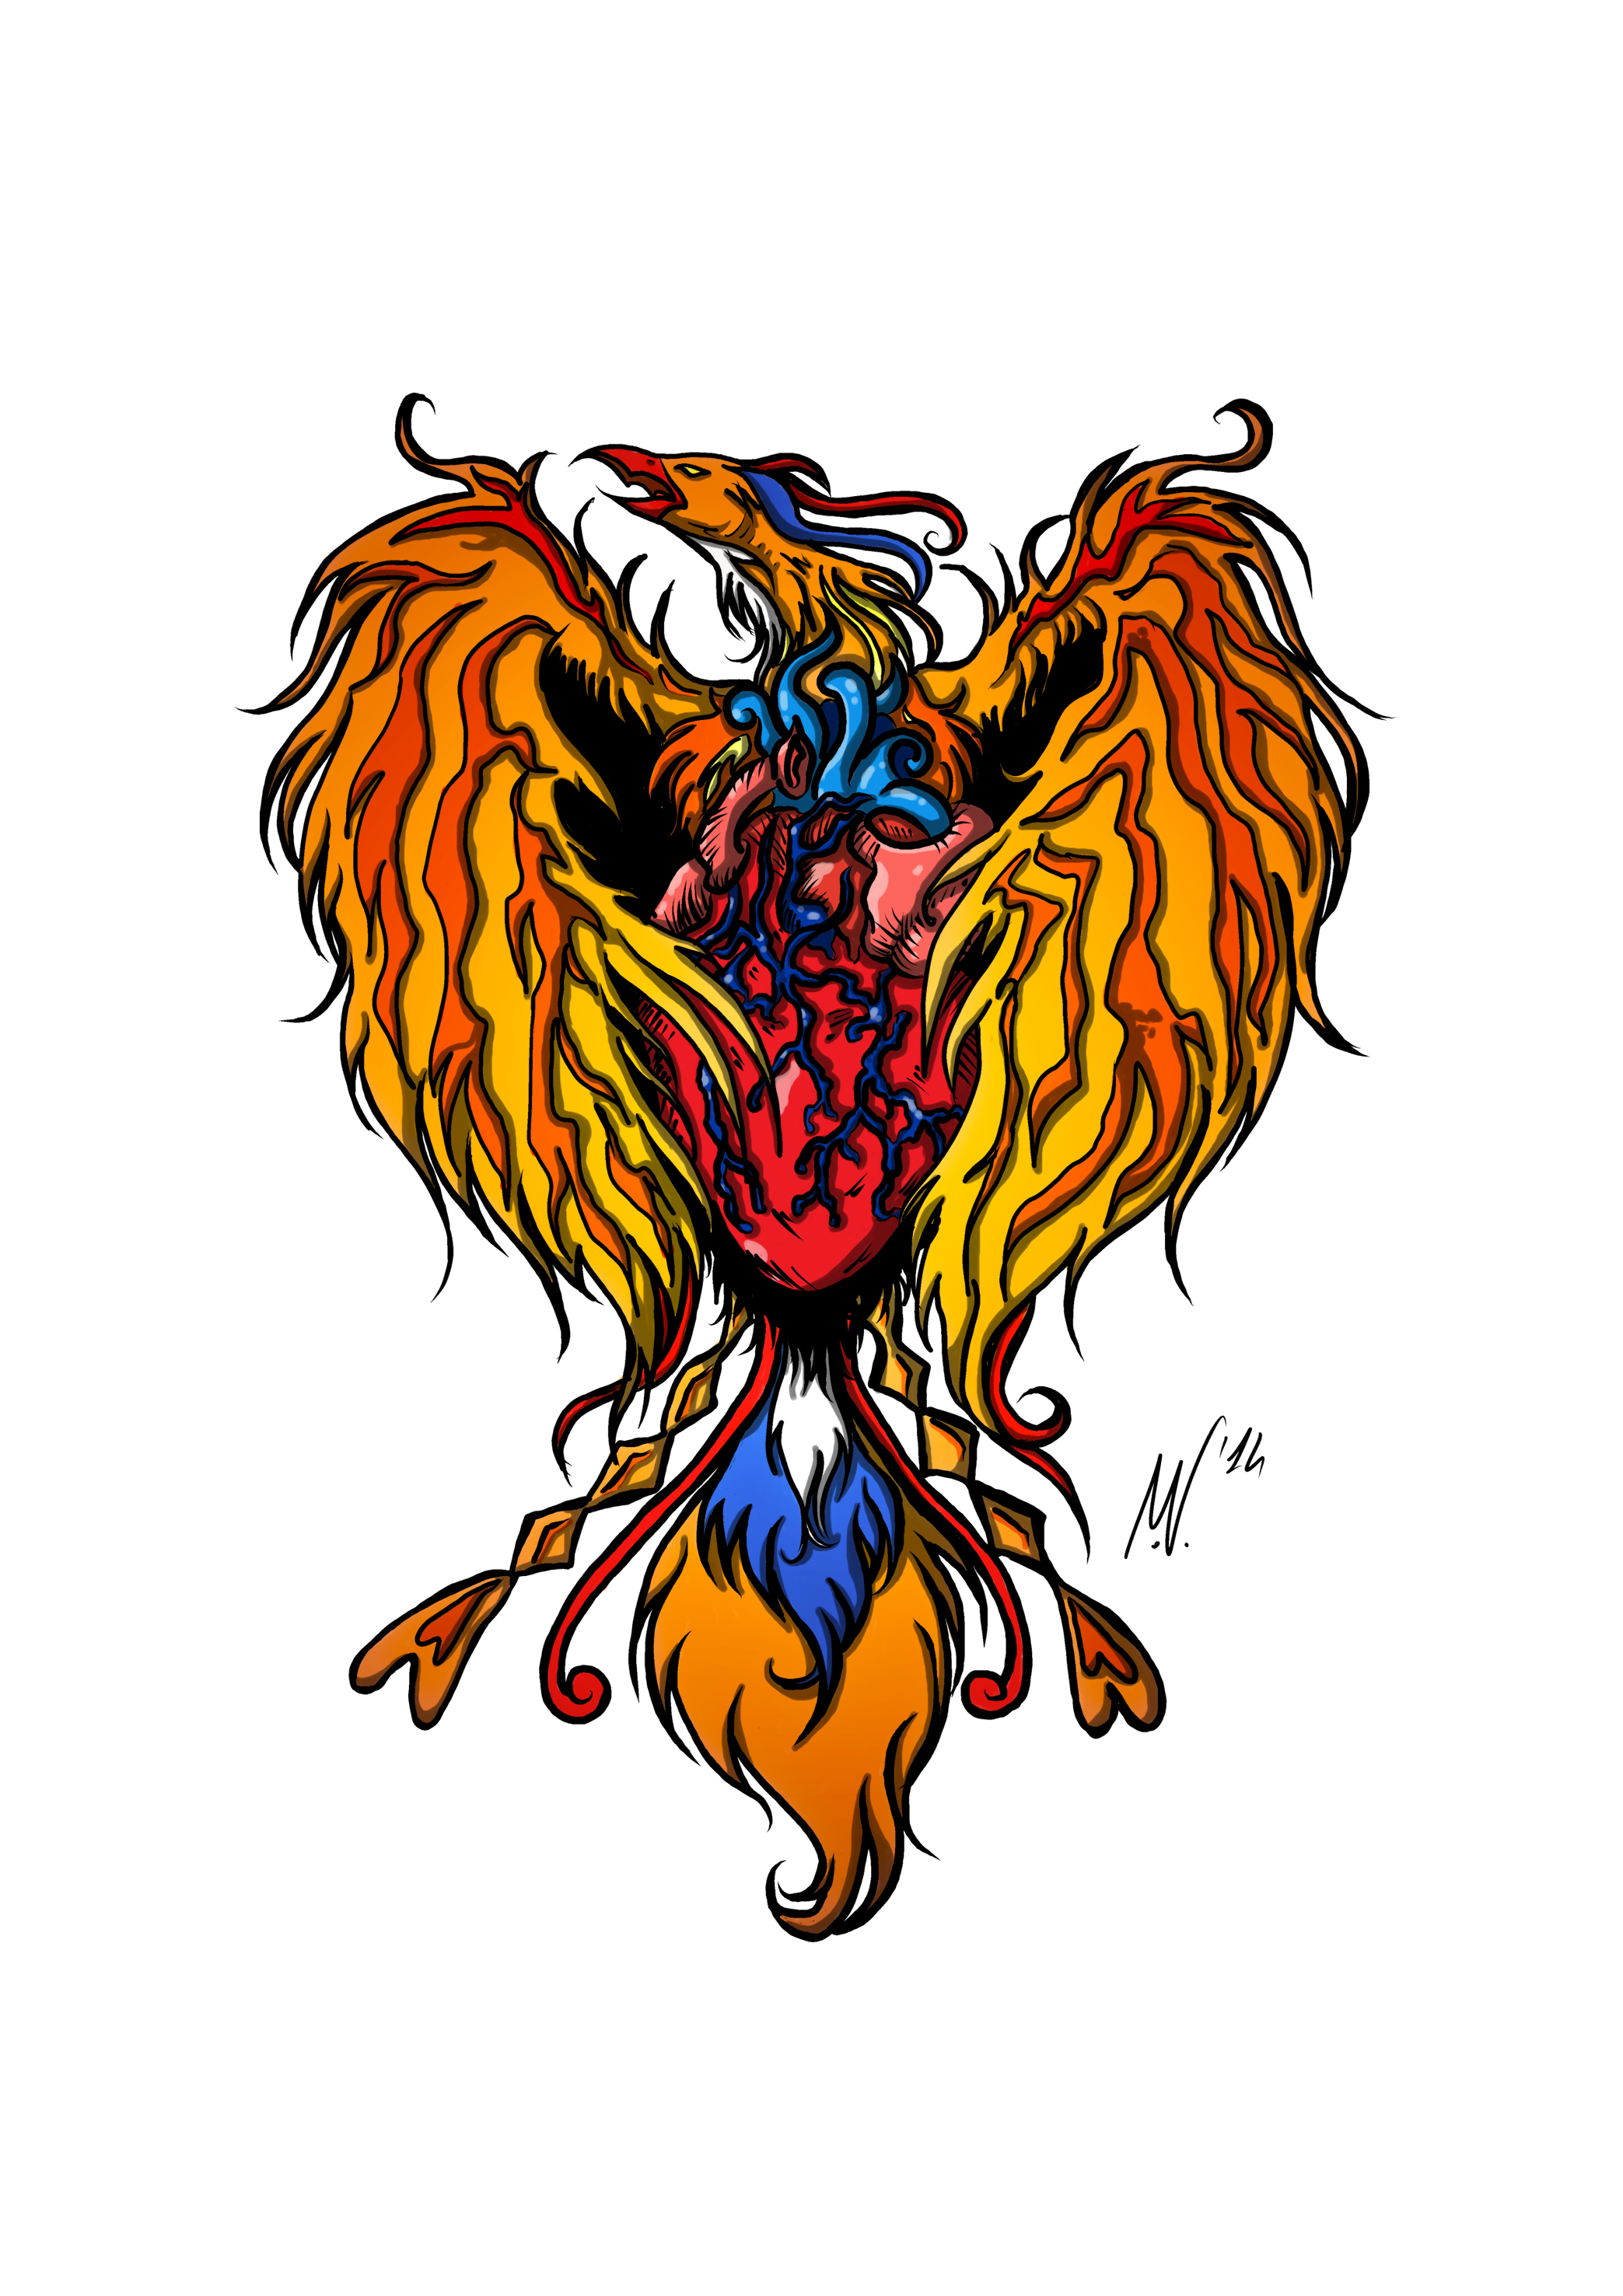 Tattoo Commission (Color)